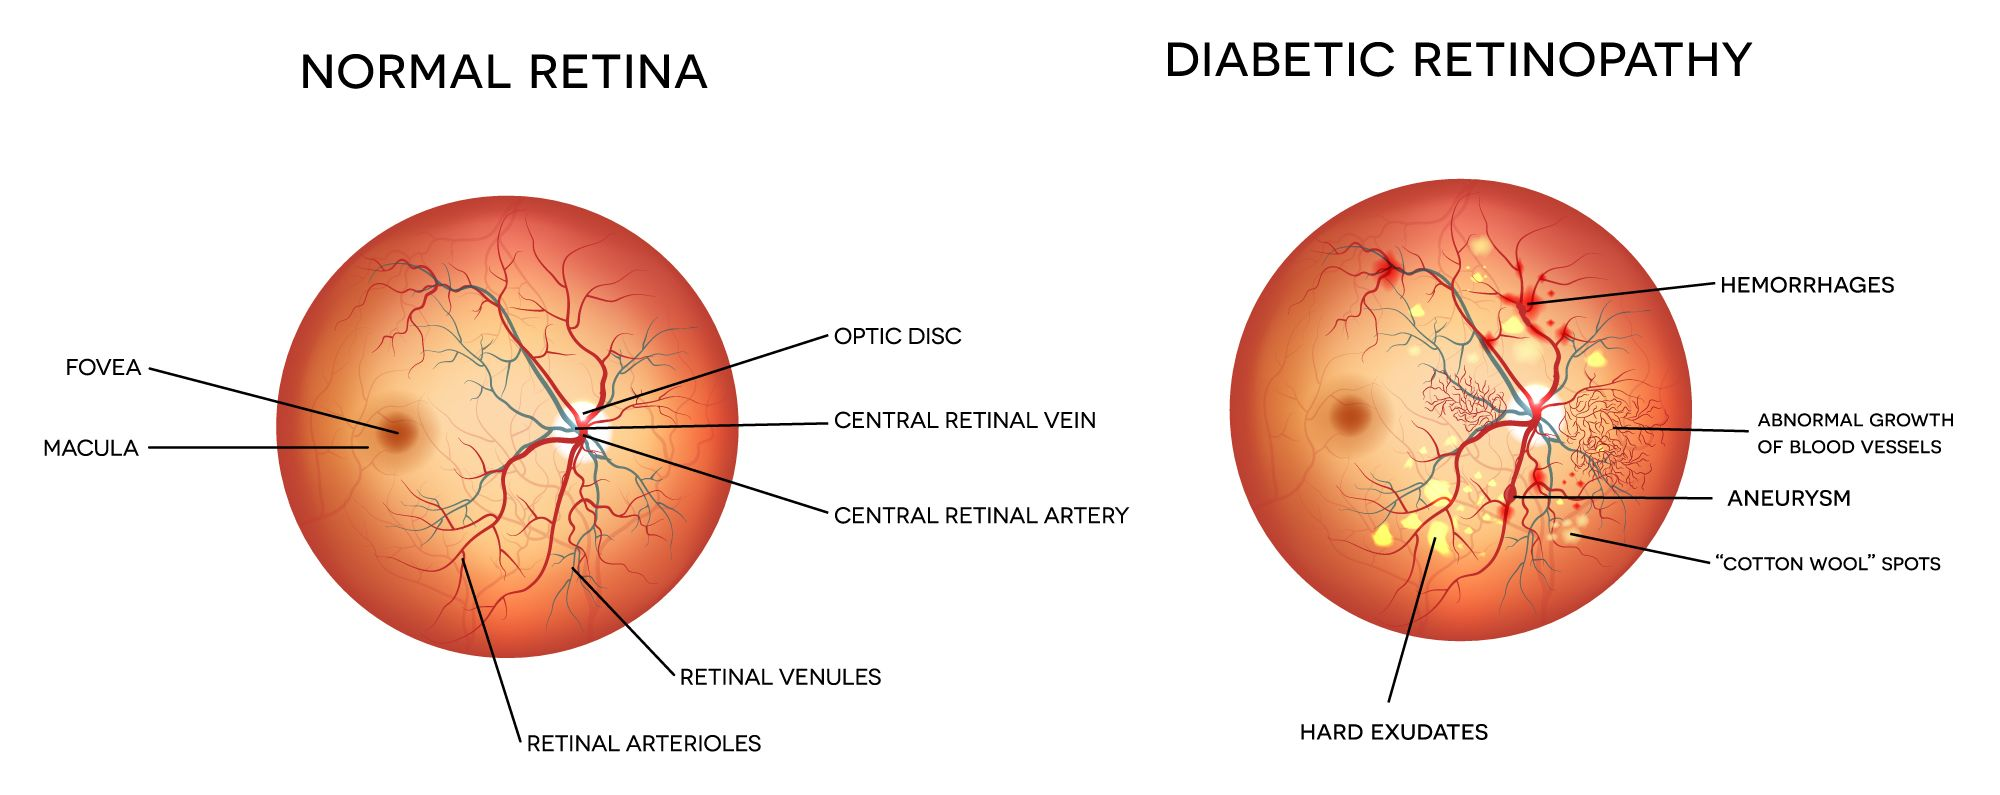 An illustration of a normal retina next to a diabetic retina